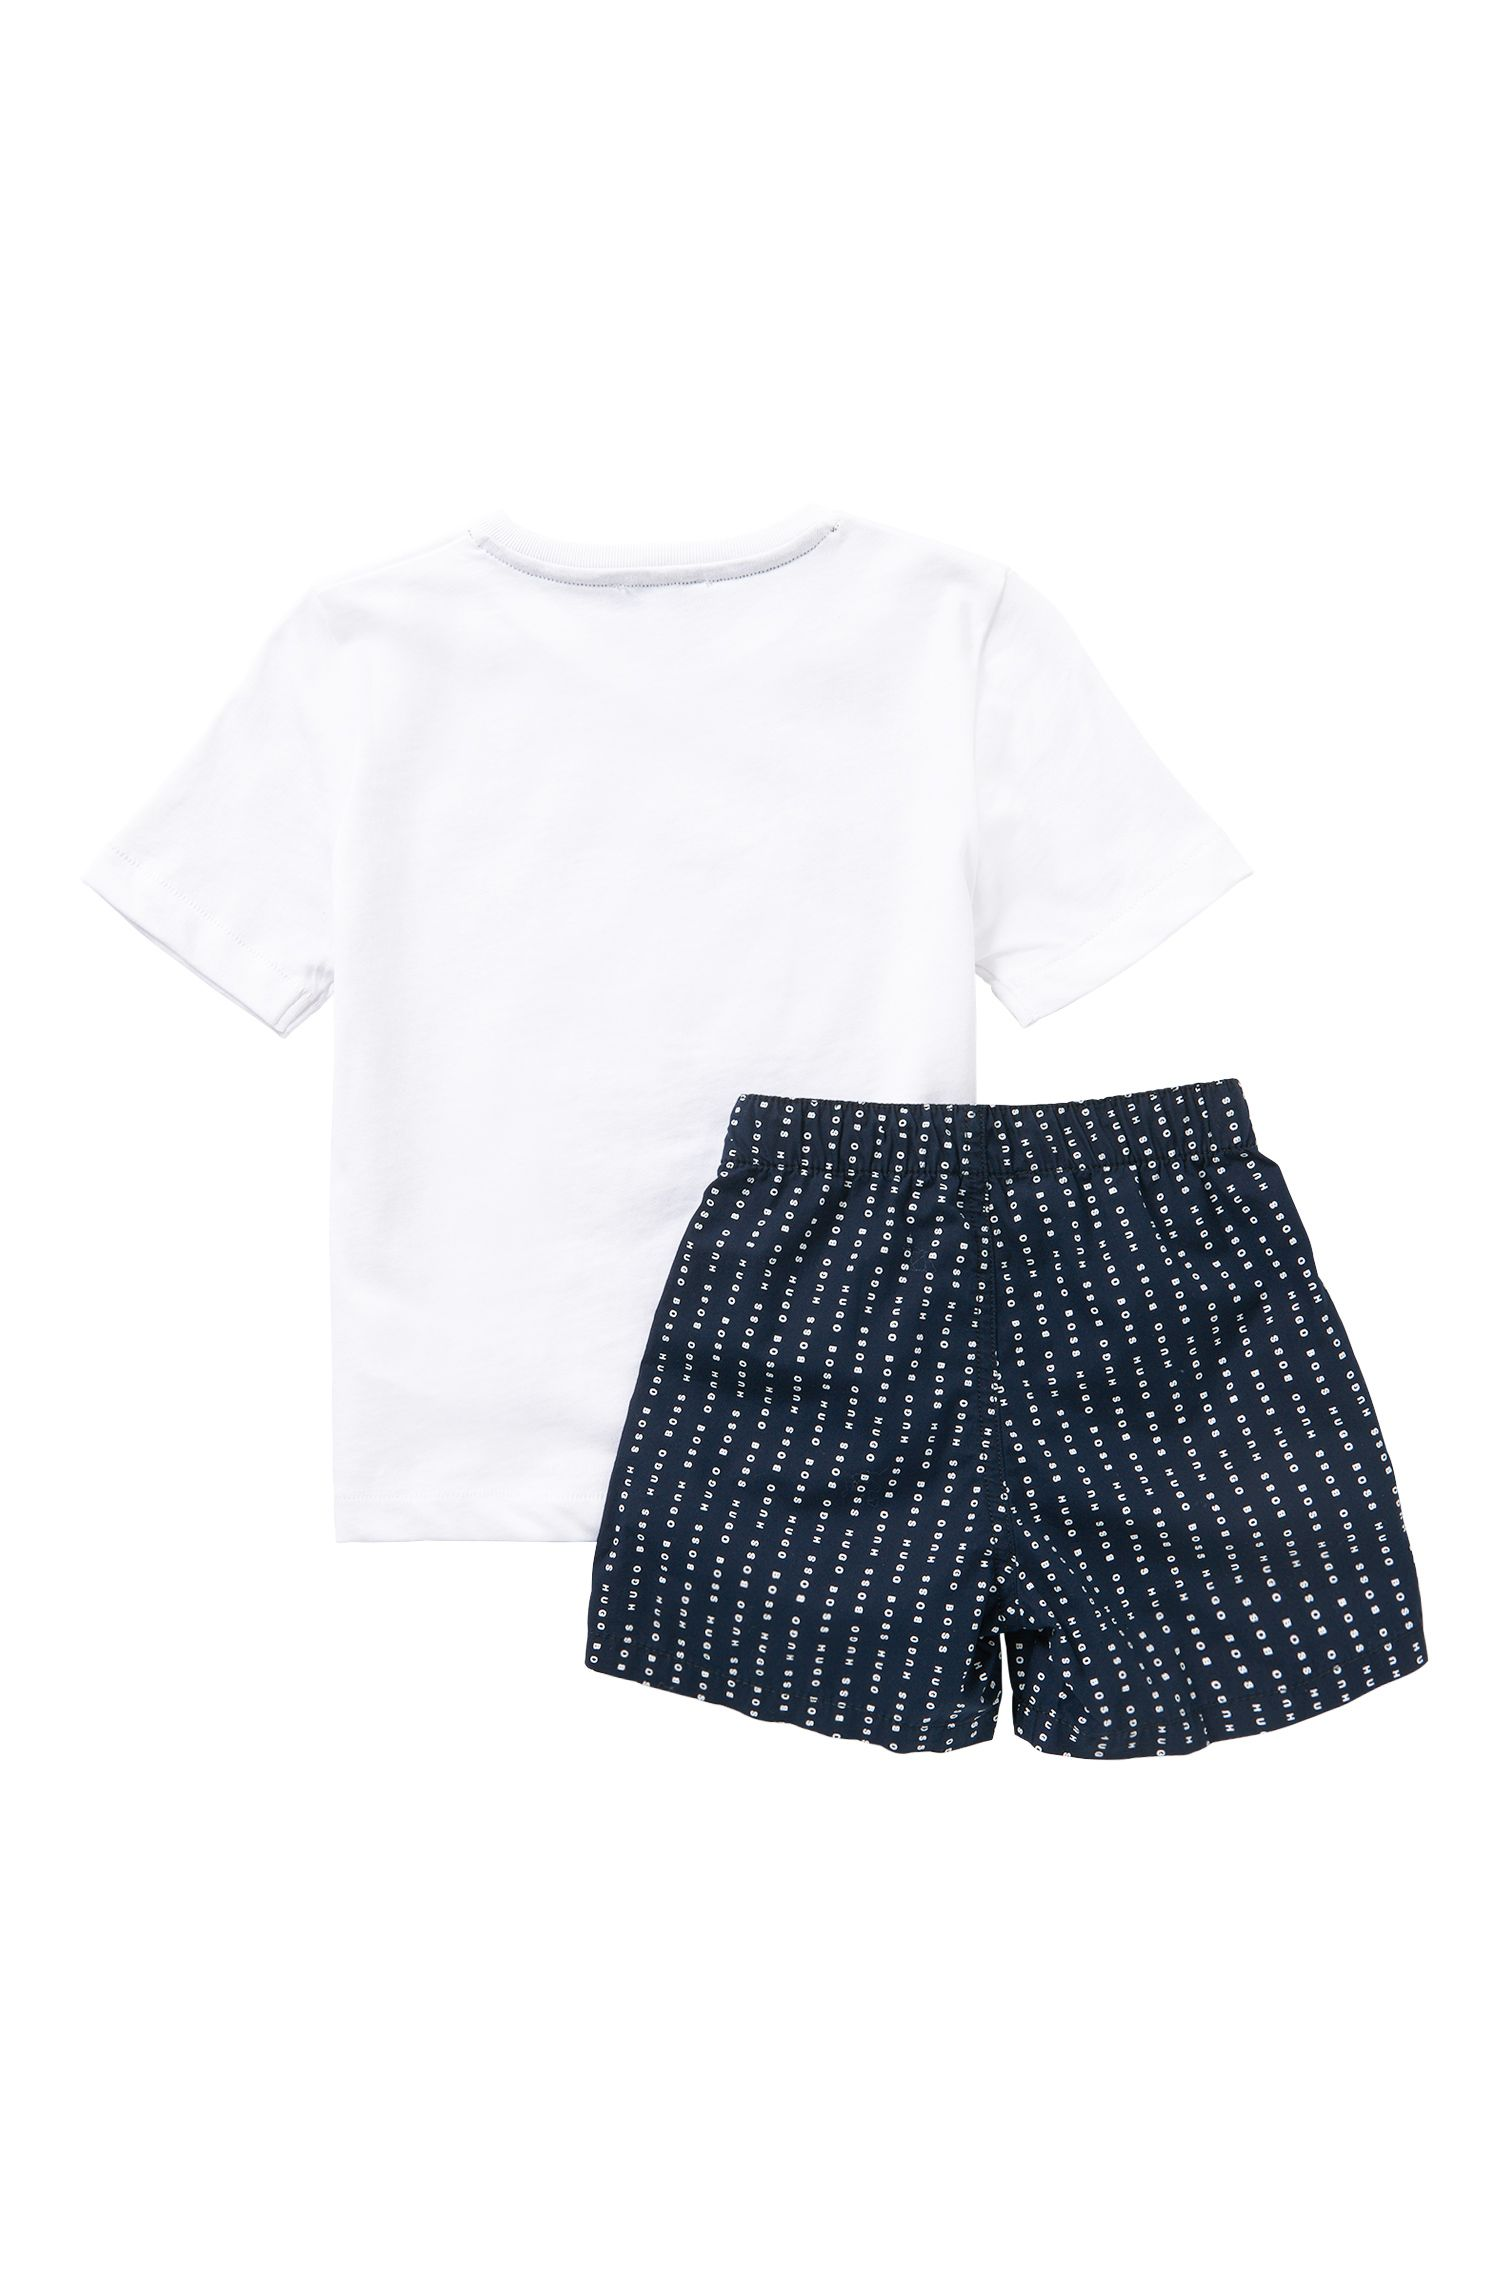 Kids' pyjamas in cotton with logo lettering: 'J28044'